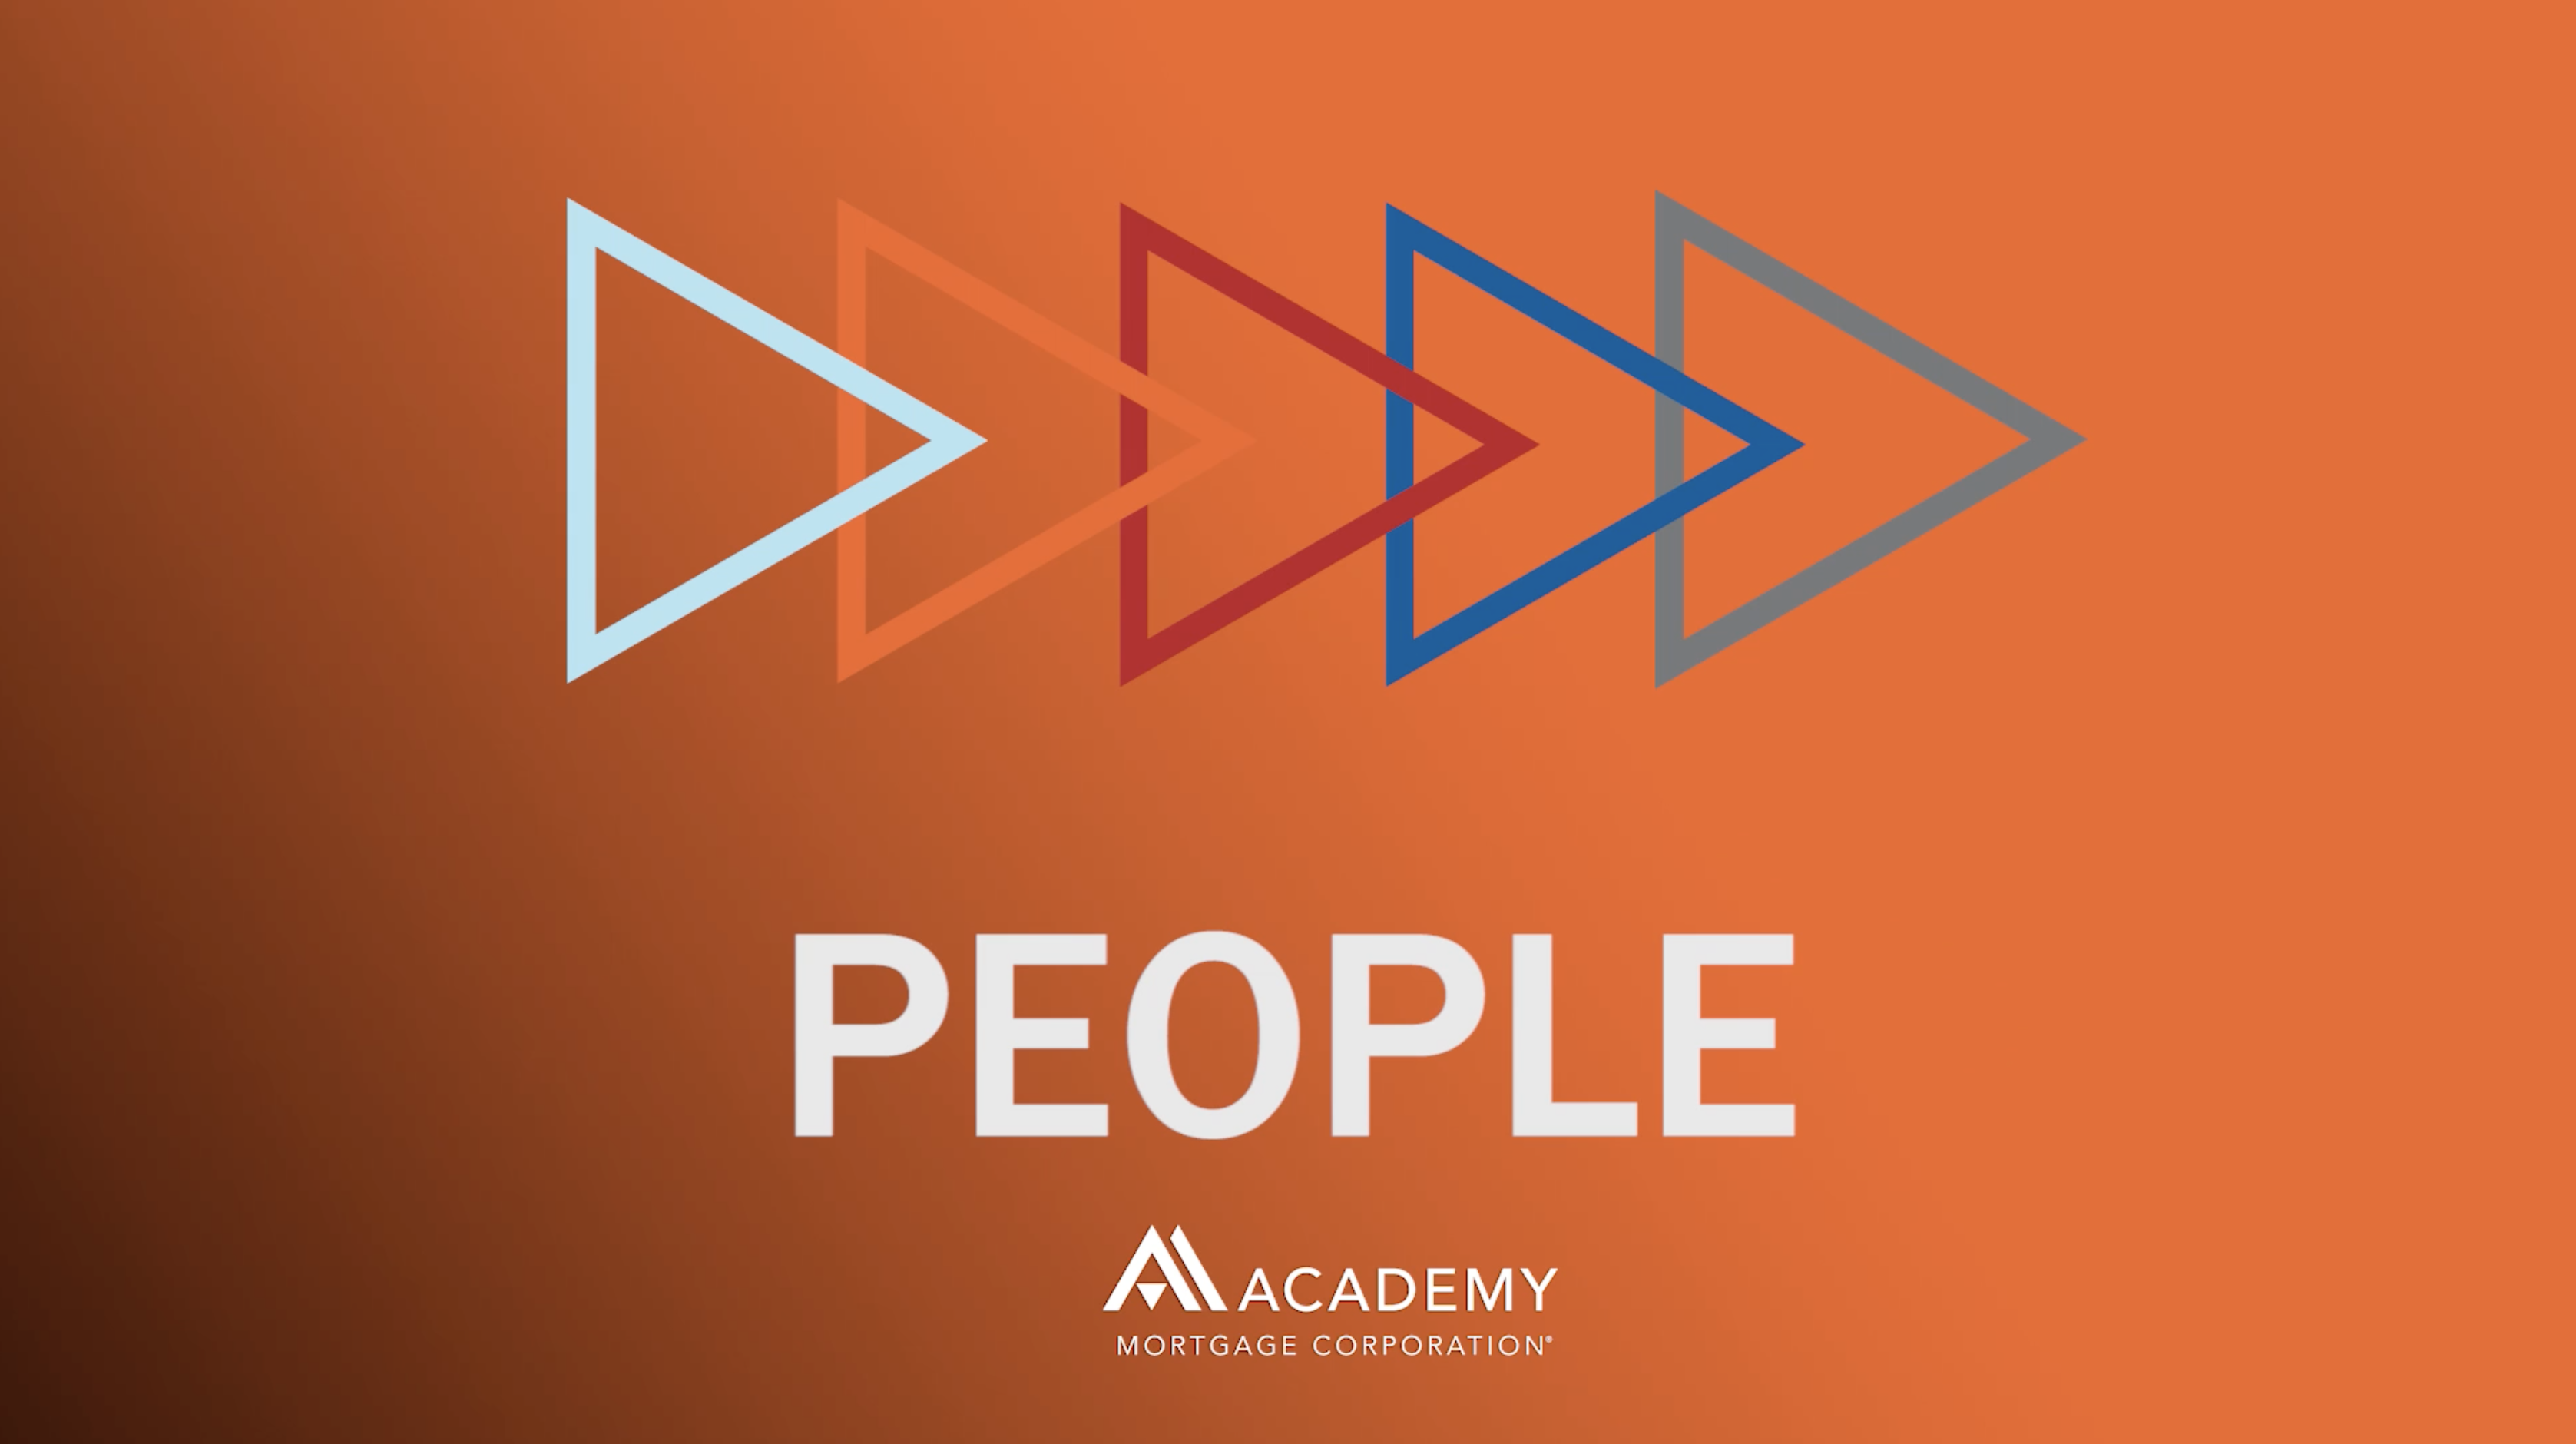 Academy's 5Ps: People